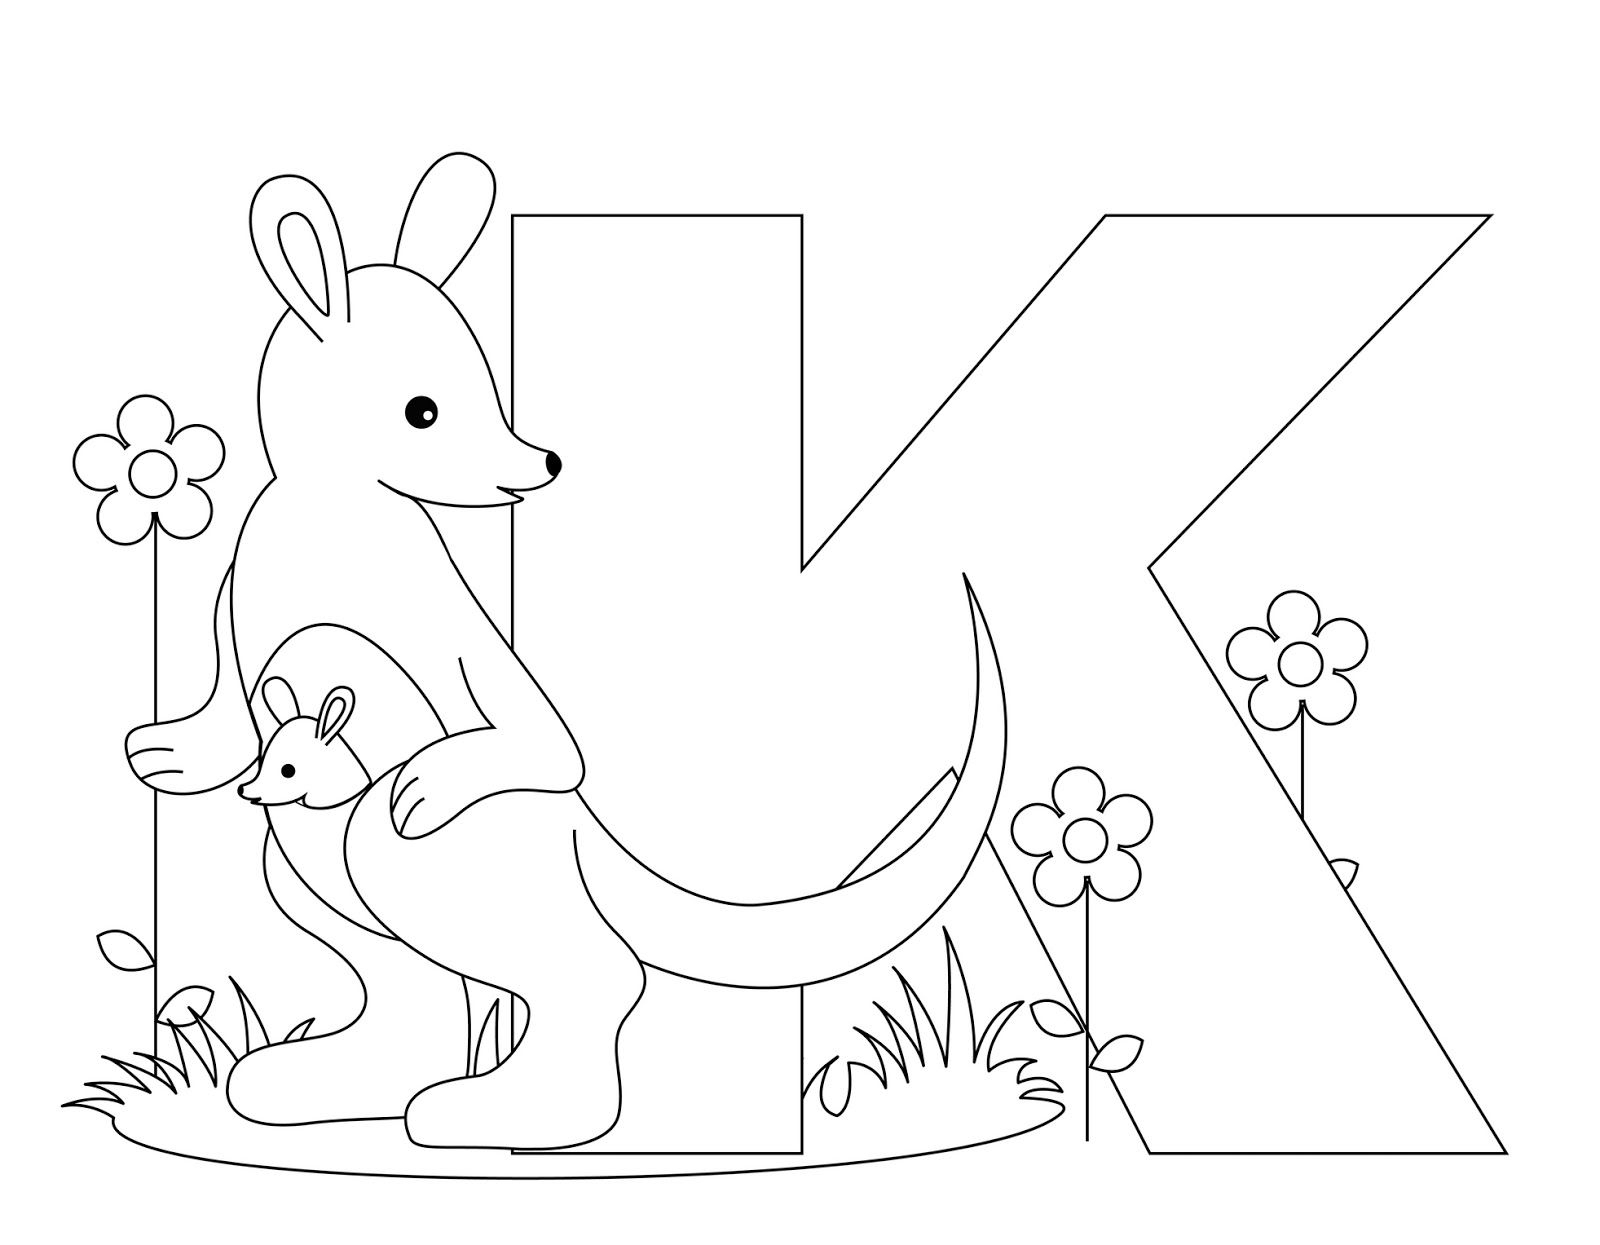 Coloring Pages : Alphabet Letters Coloring Pages Free Printable - Free Printable Animal Alphabet Letters